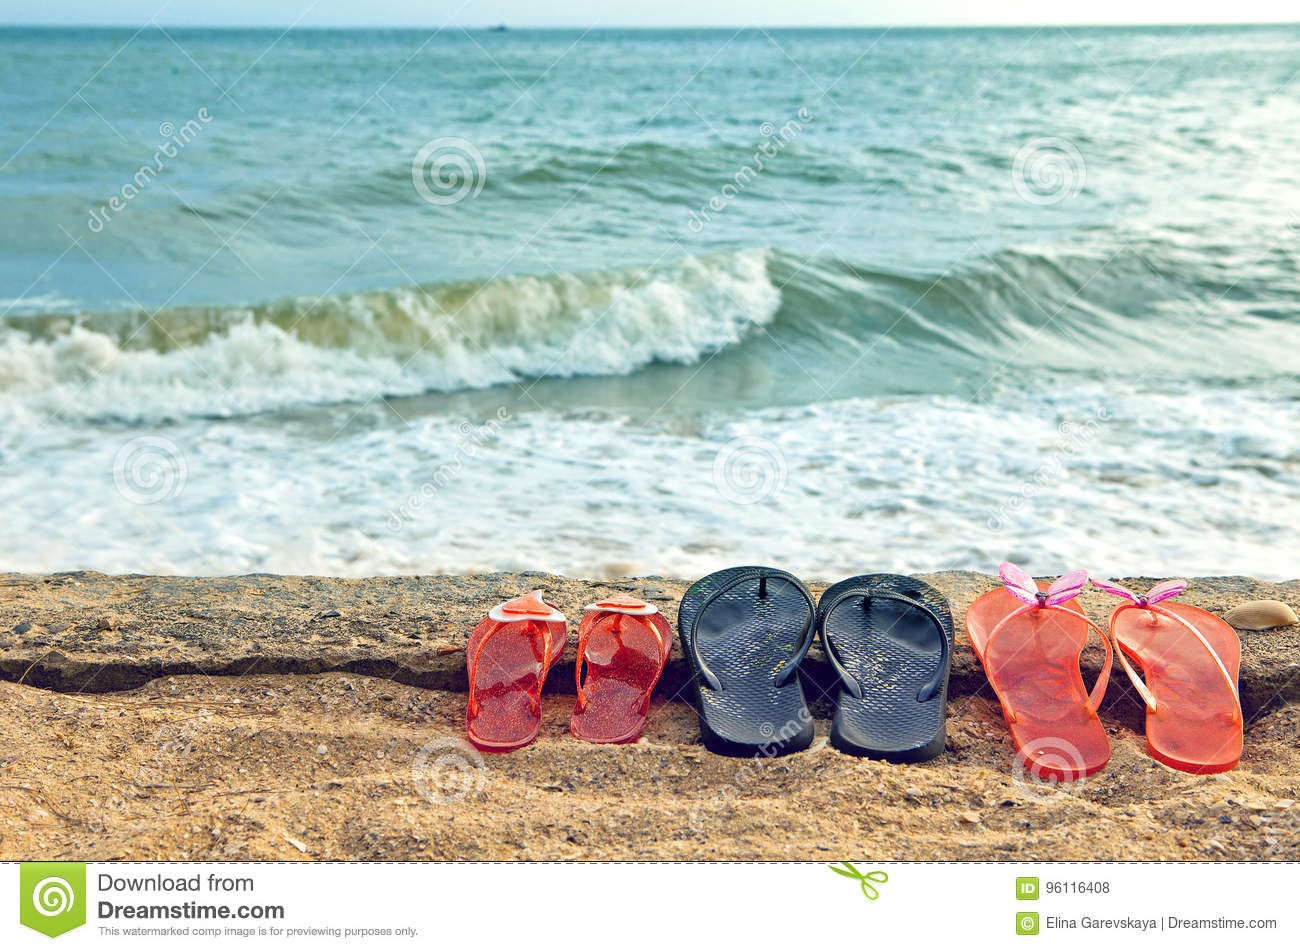 1180b254c3b6e Beach Slippers On The Sand Against The Sea Stock Photo - Image of ...